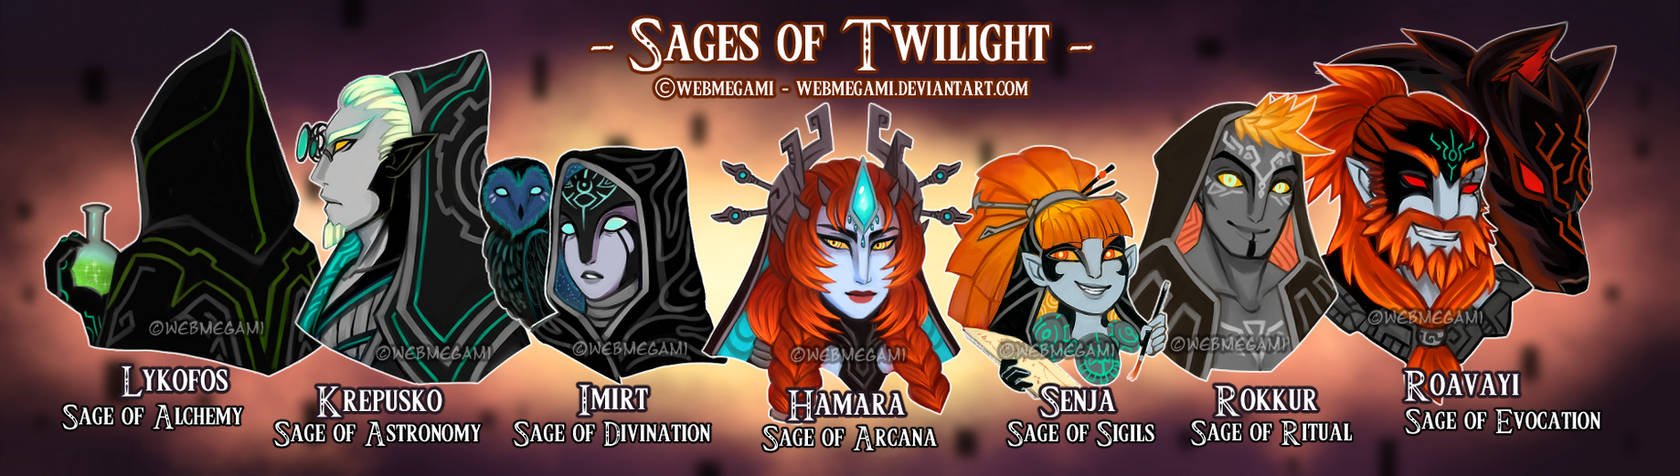 The Sages of Twilight